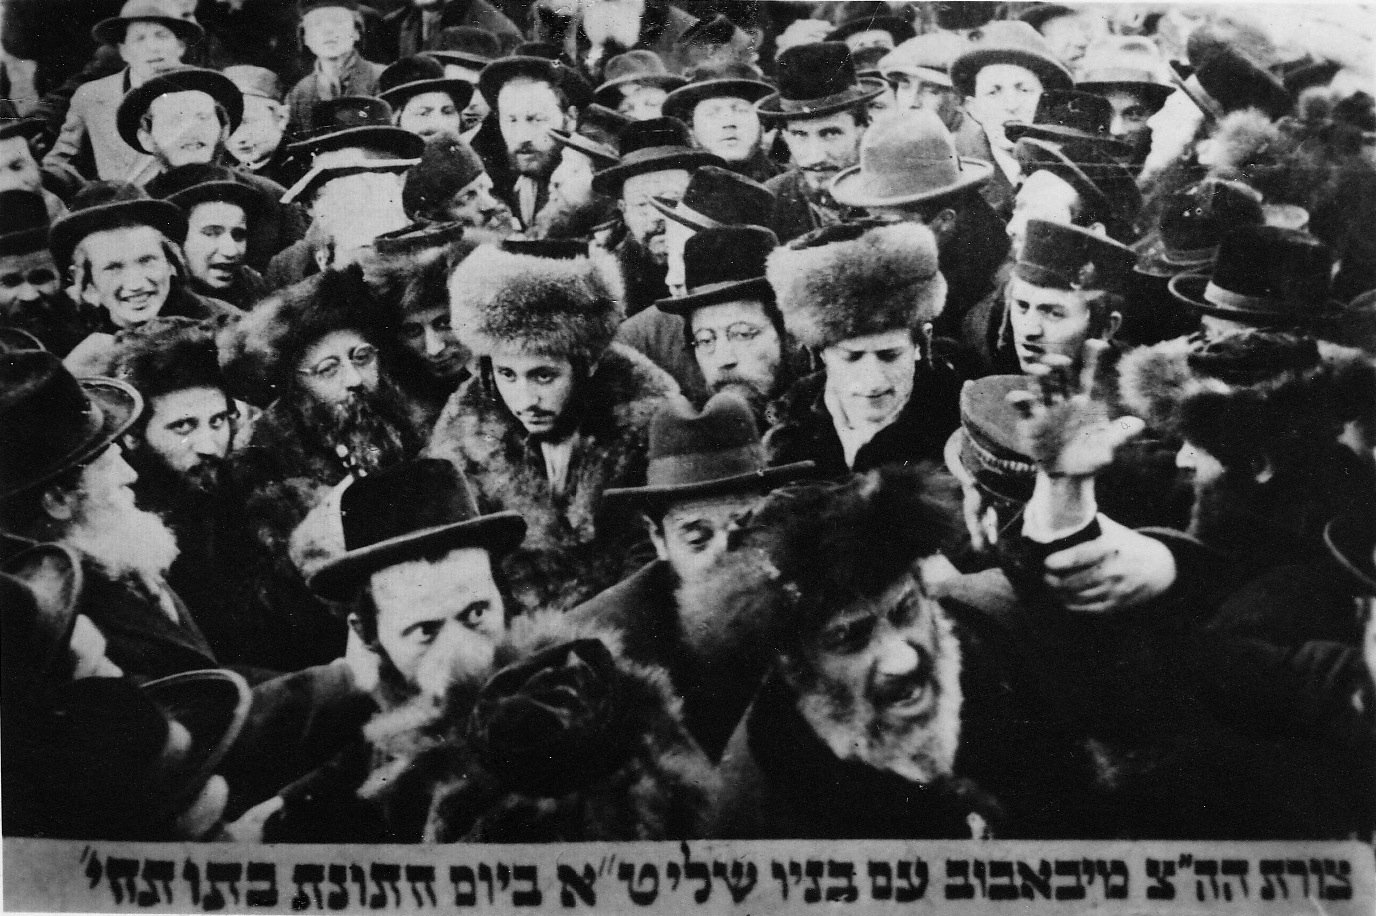 Postcard of Rabbi Bentzion Halberstam (in shtrimel and galsses), the Bobover Rebbe, with his son, Rabbi Shlomo Halberstam (in lighter shtrimel and fur coat), the future Bobover Rebbe, his brother to his left, on the day of the Rebbe's daughter's wedding.